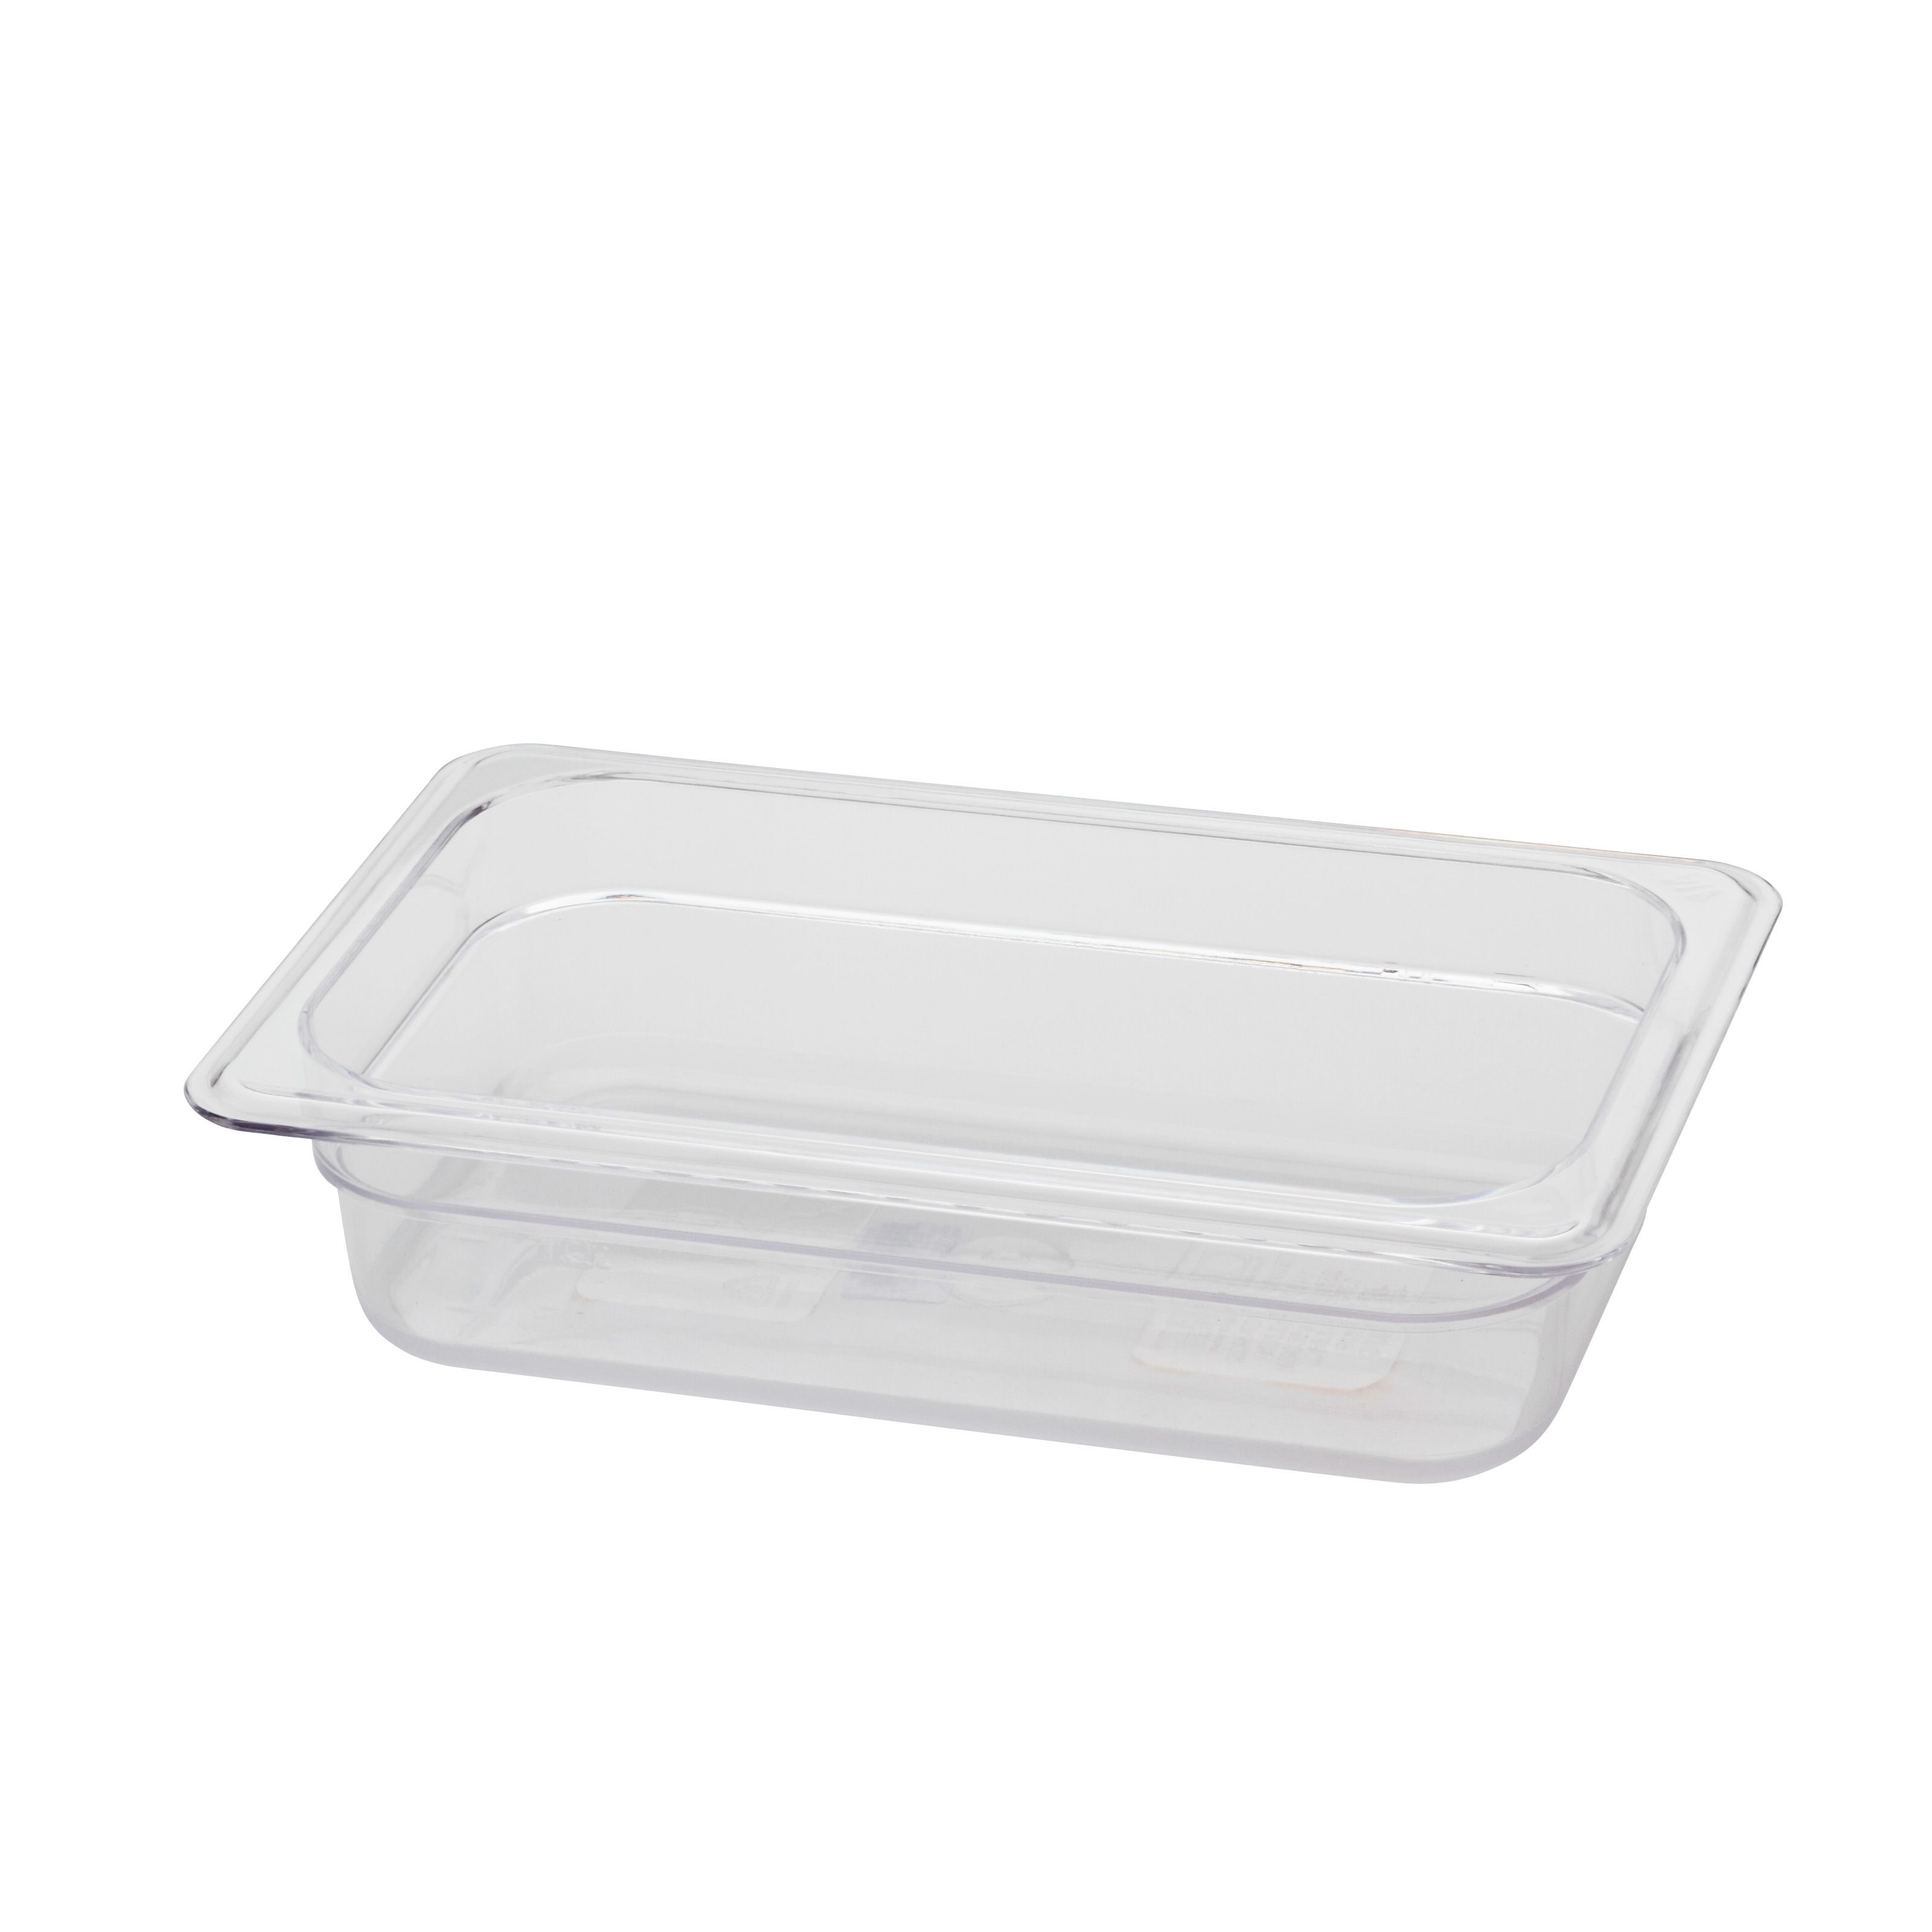 Royal Industries ROY PCP 1402 food pan, plastic